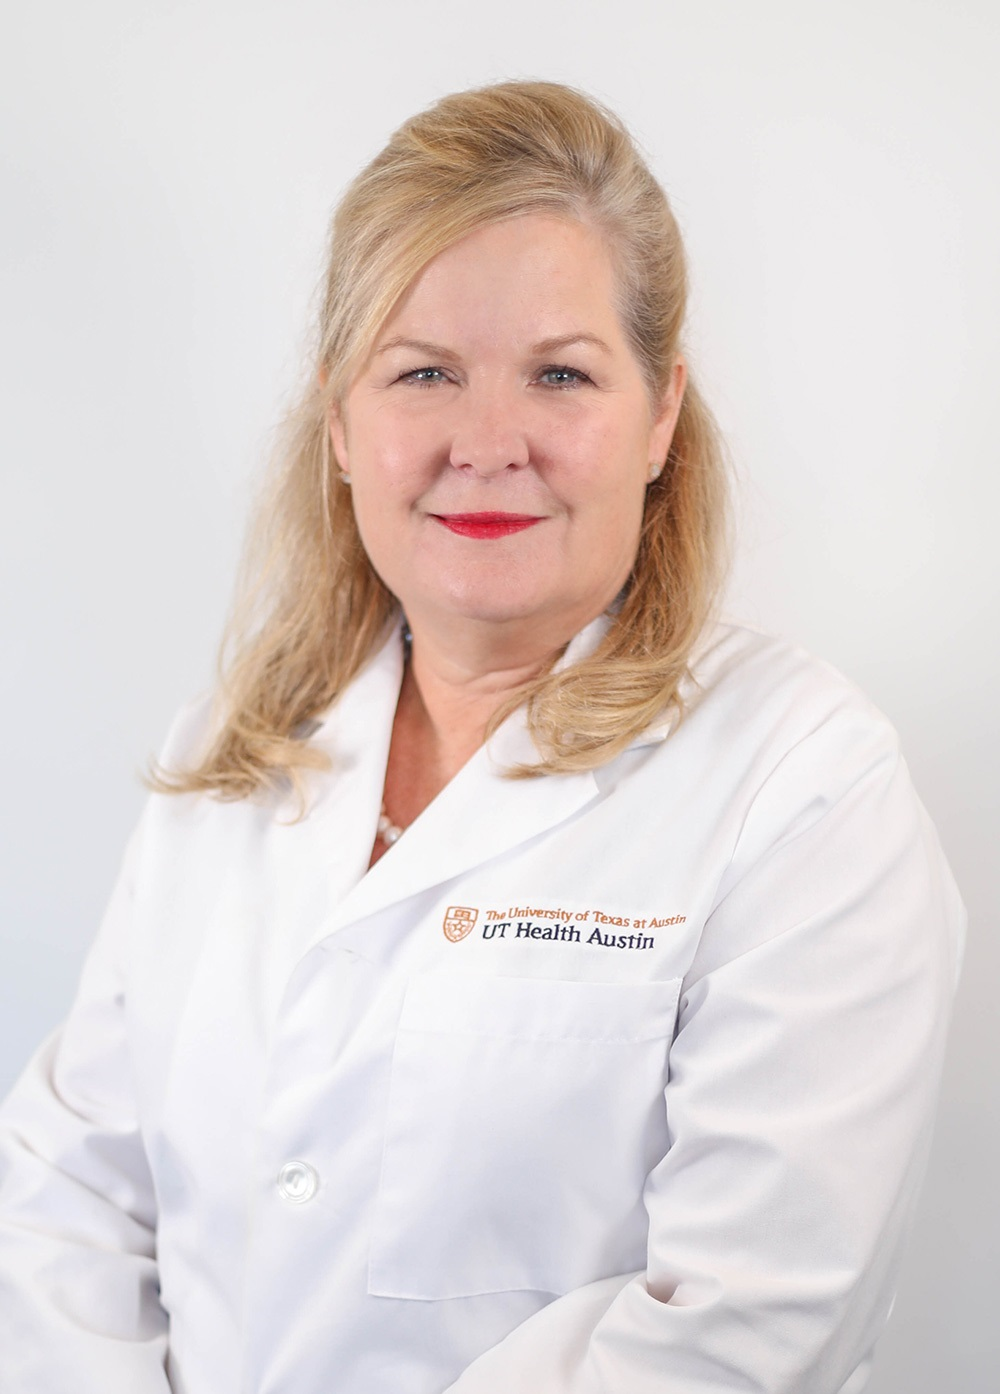 Immediate Past President - Amy Young, MD